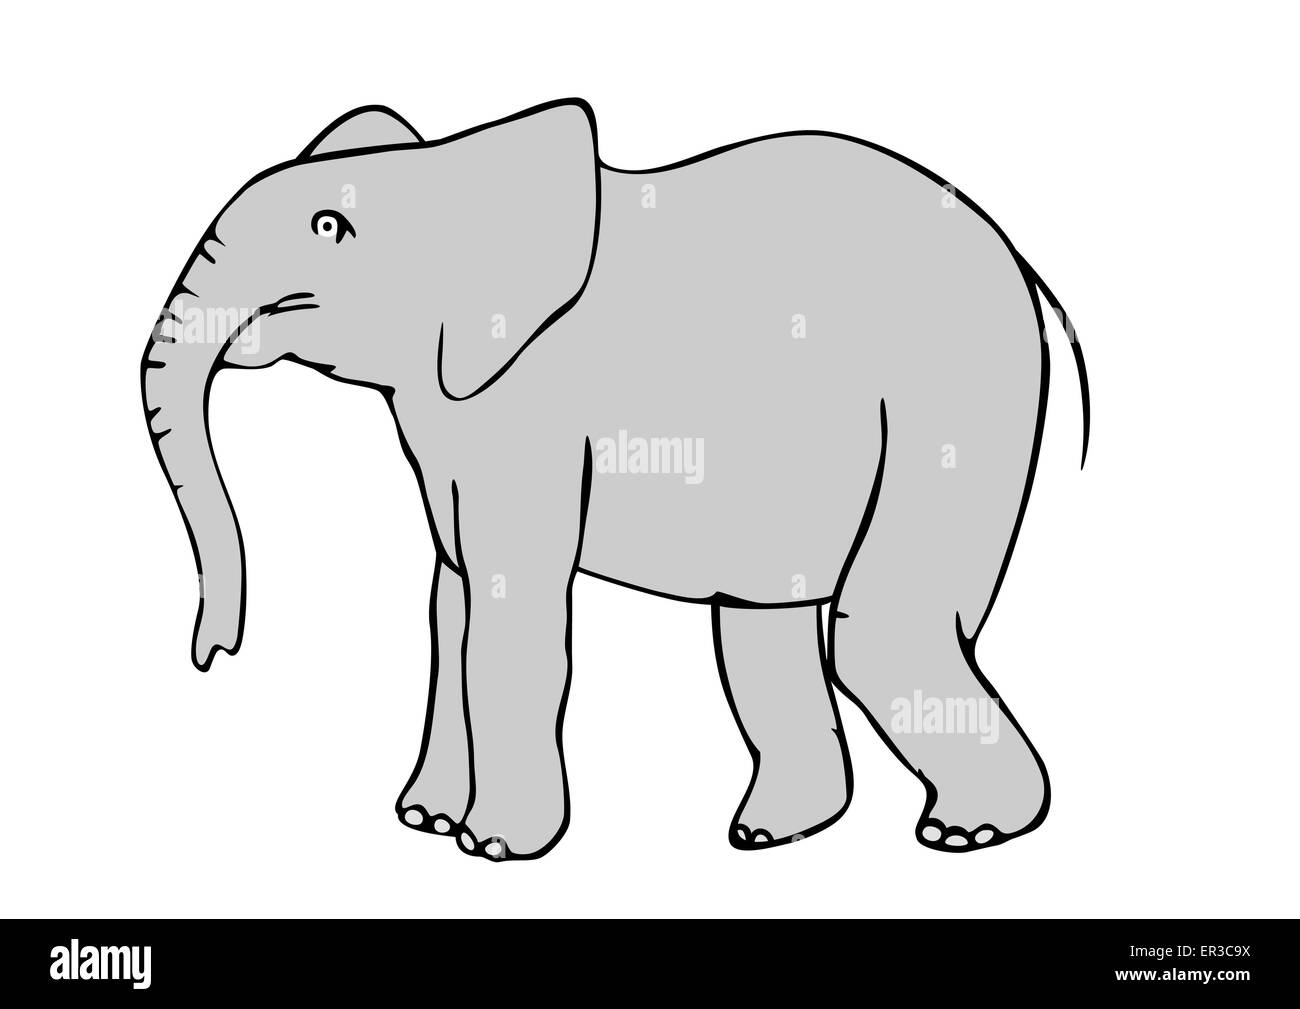 Elephant Trunk Stock Vector Images - Alamy